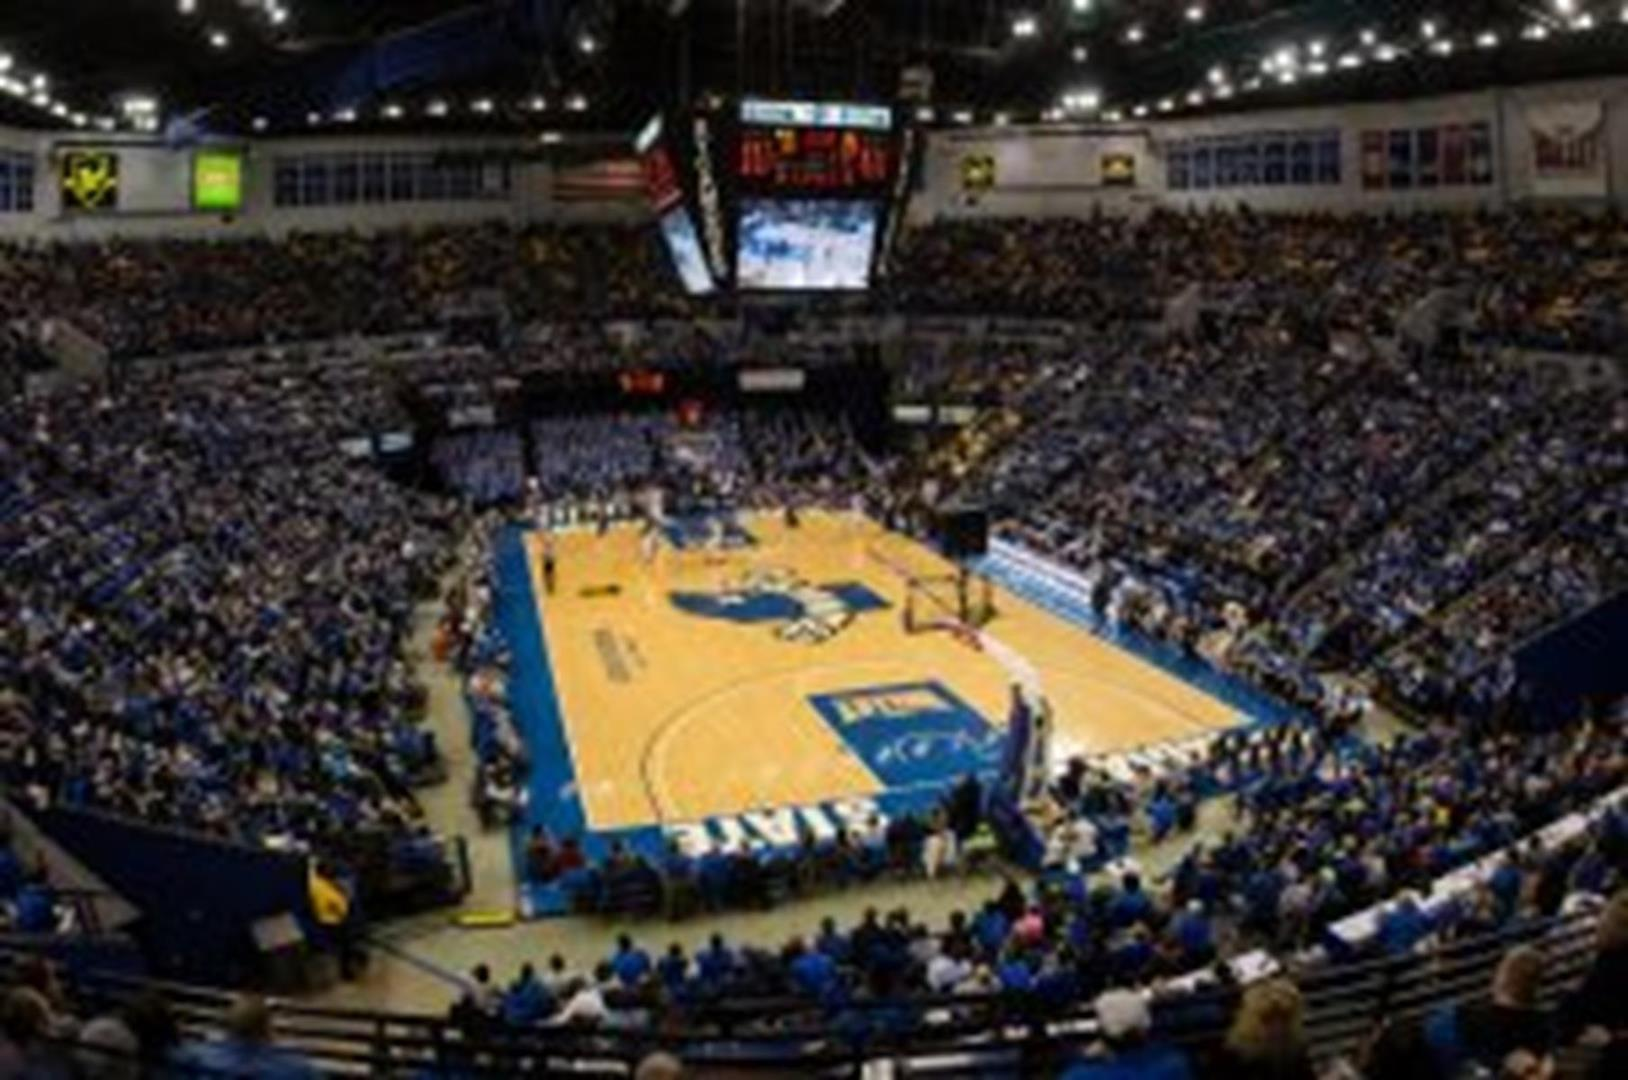 ISU falls to #4 Wichita State at Hulman Center in mens basketball action